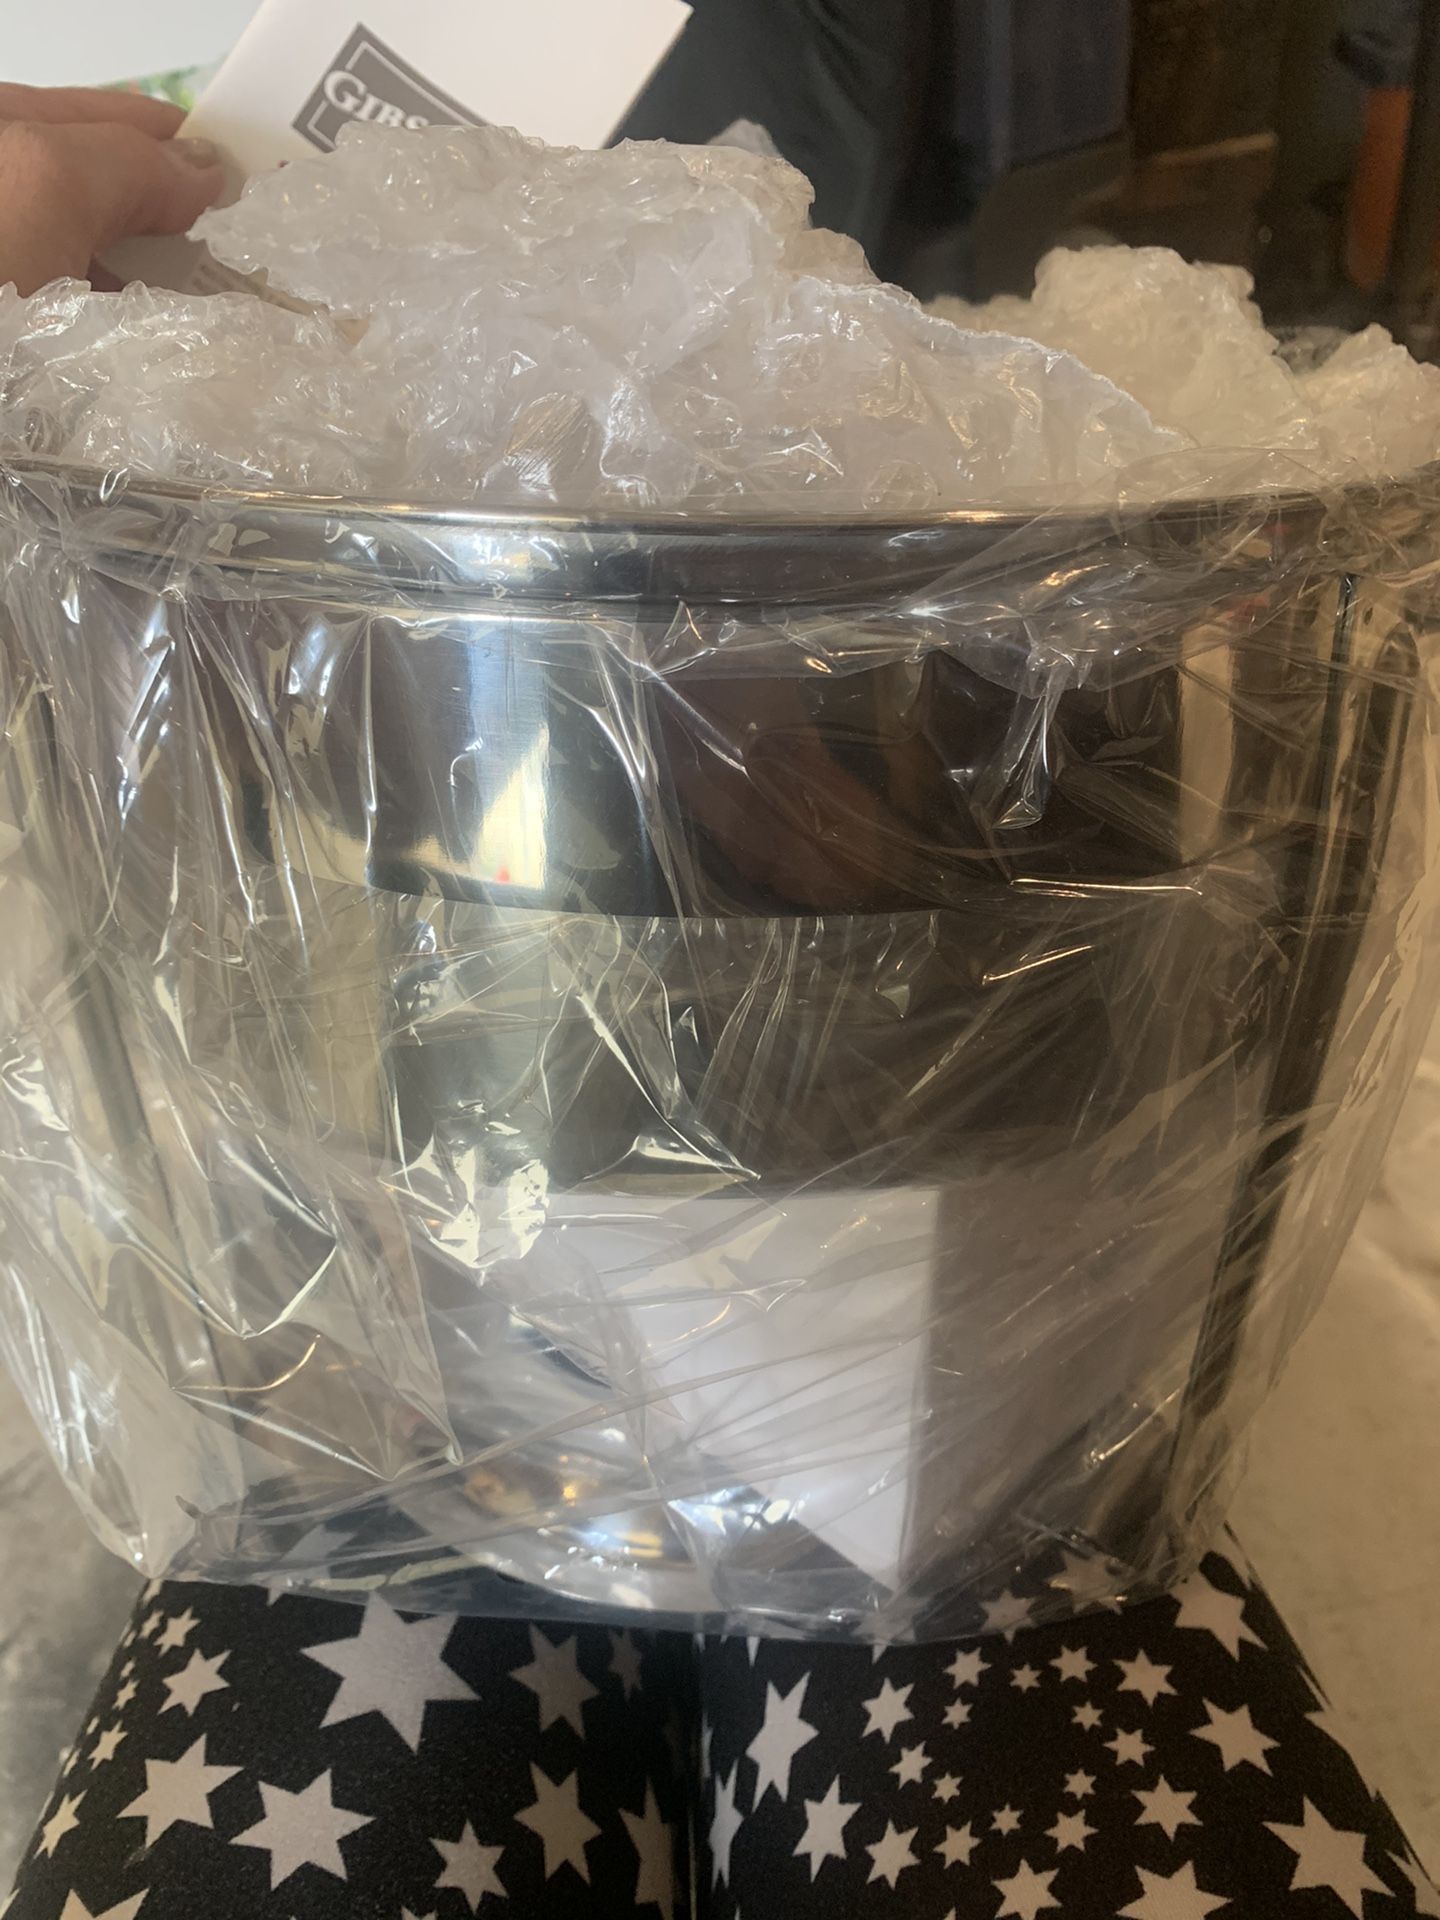 4.5qt Chafing Dish Set - Gibson Home- Brand New